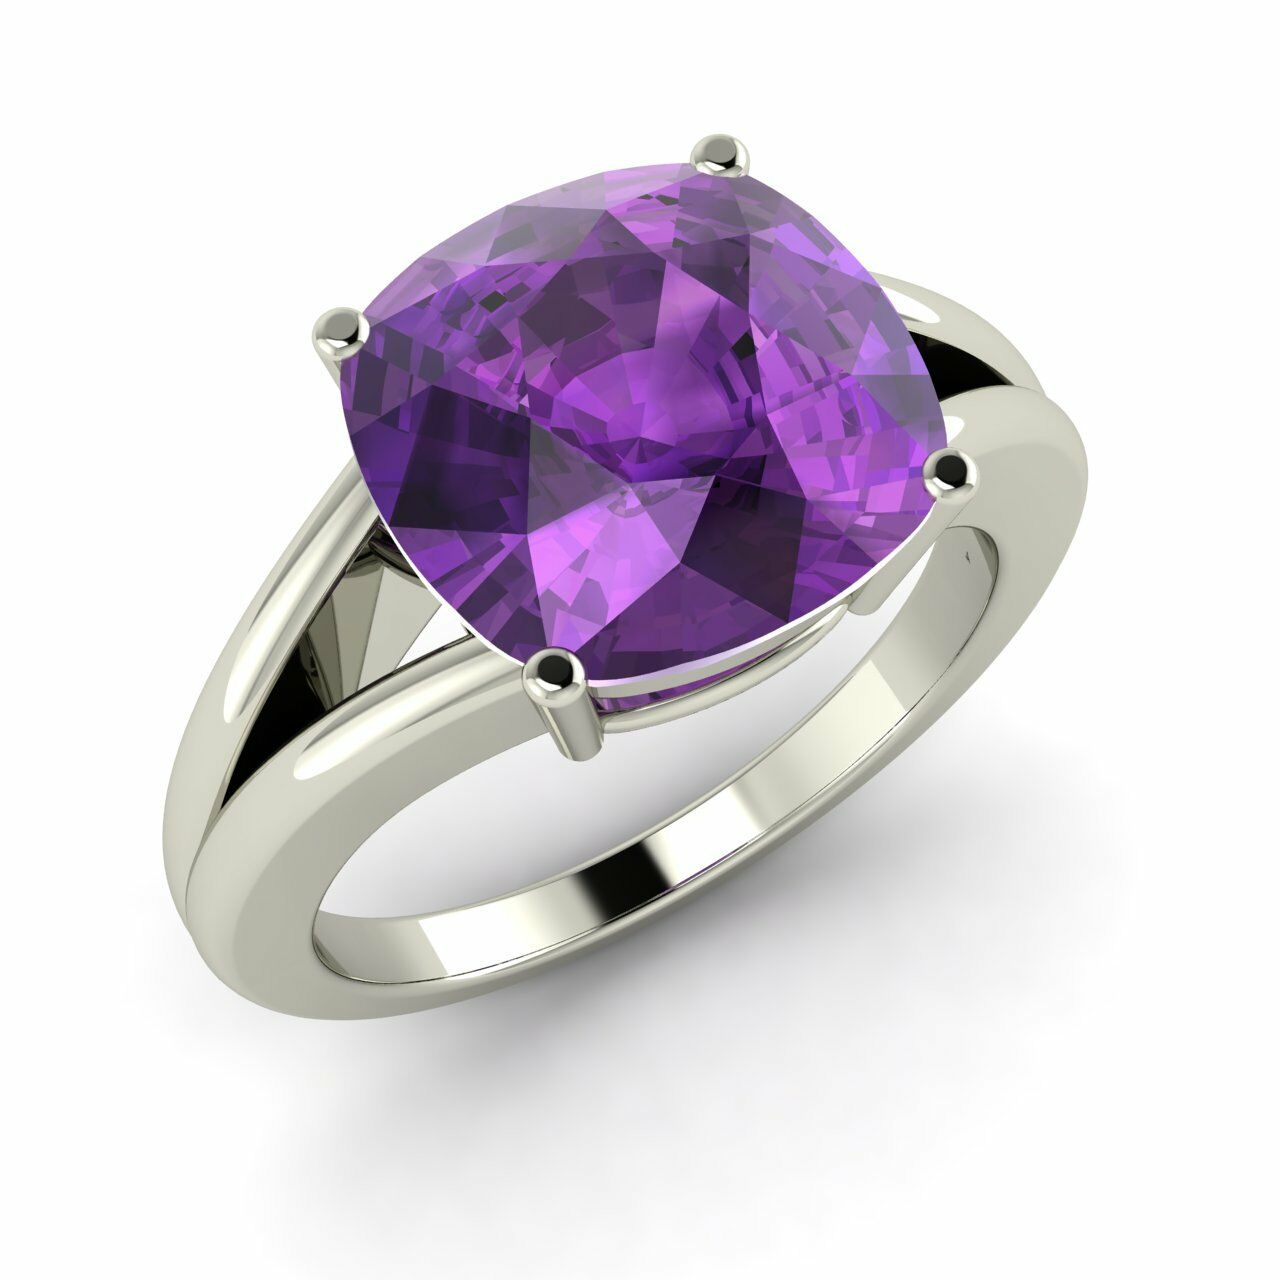 Certified 3.85 Cts Cushion Cut AAA Amethyst 14k Solid White gold Solitaire Ring